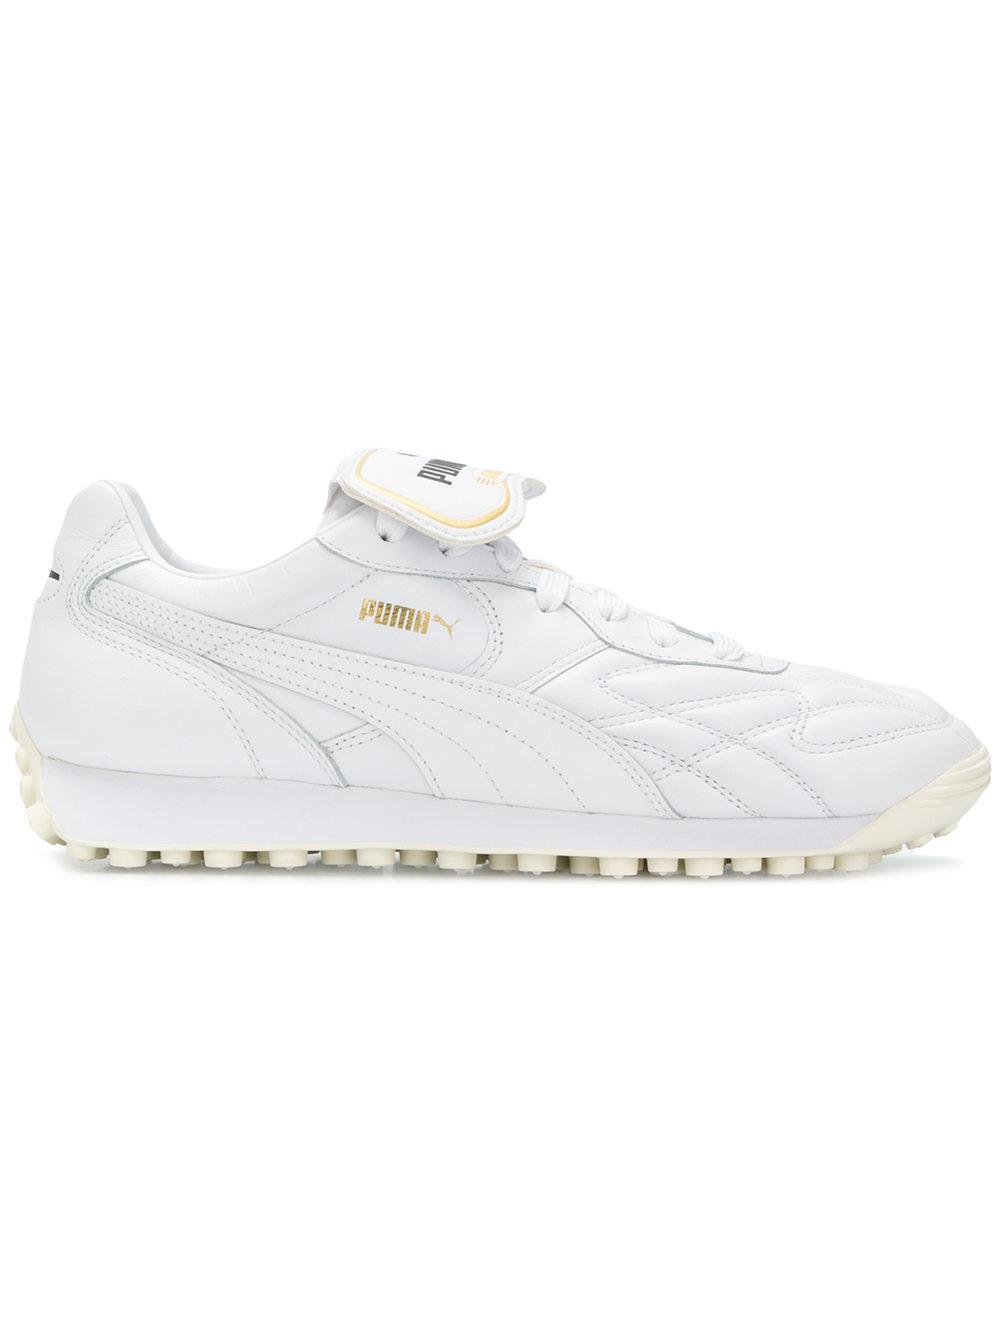 Puma King Avanti Bold Tongue Sneakers - White